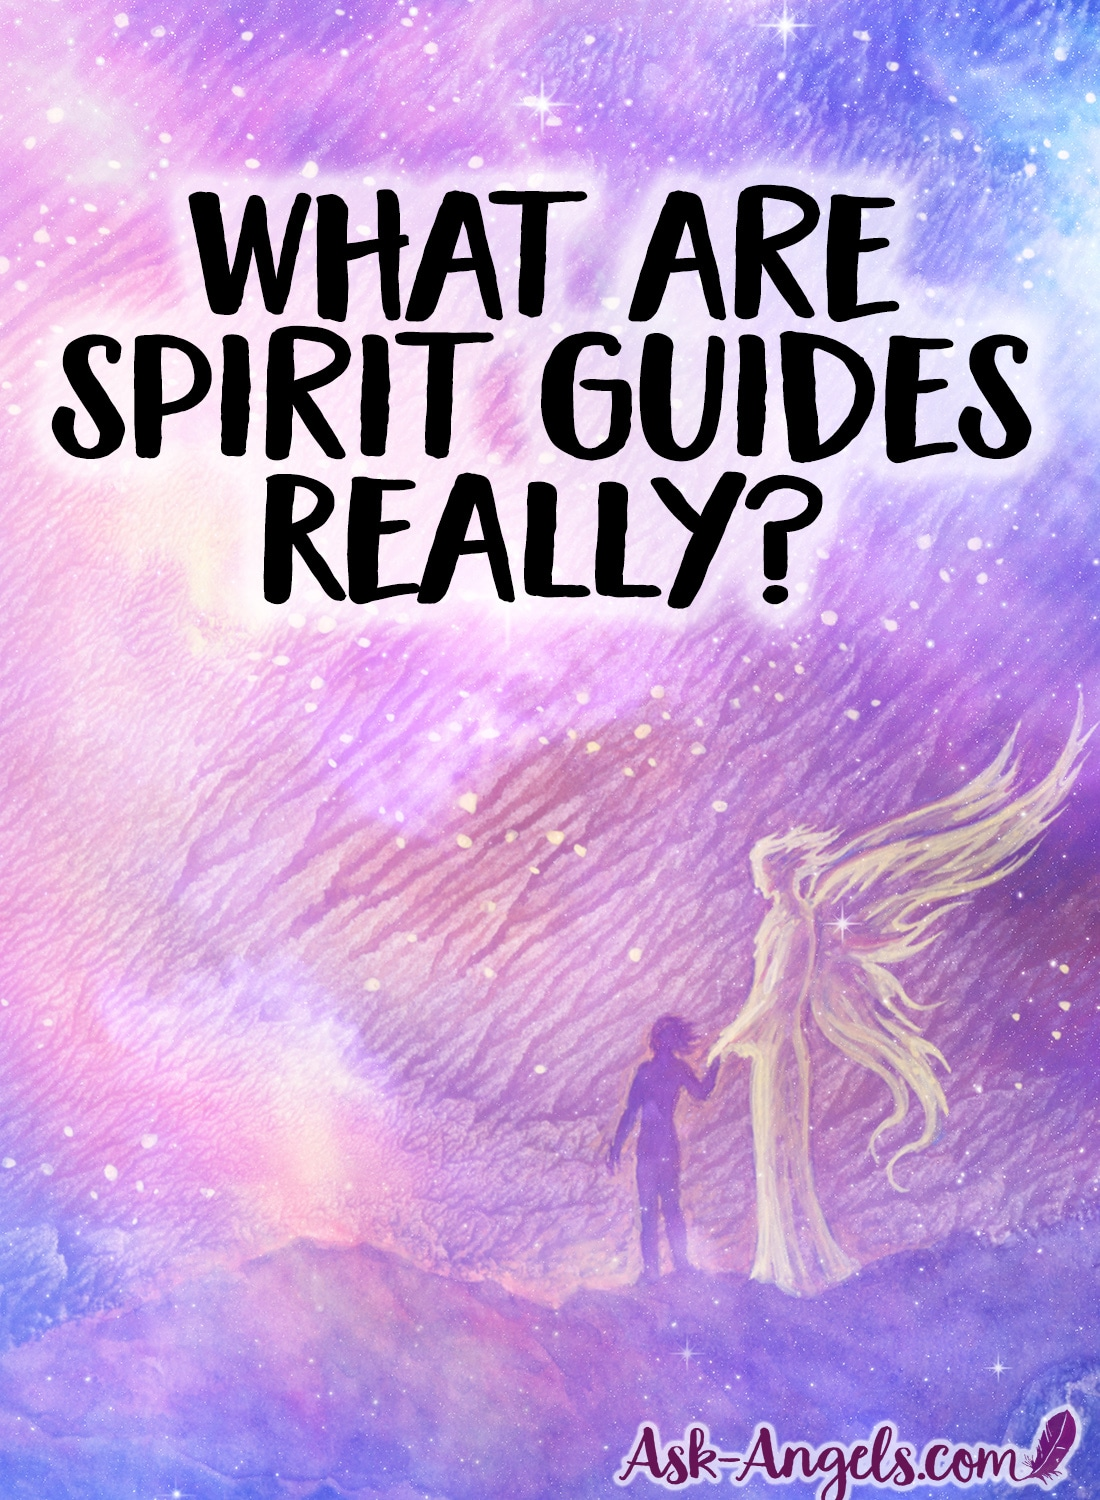 What Are Spirit Guides Really?